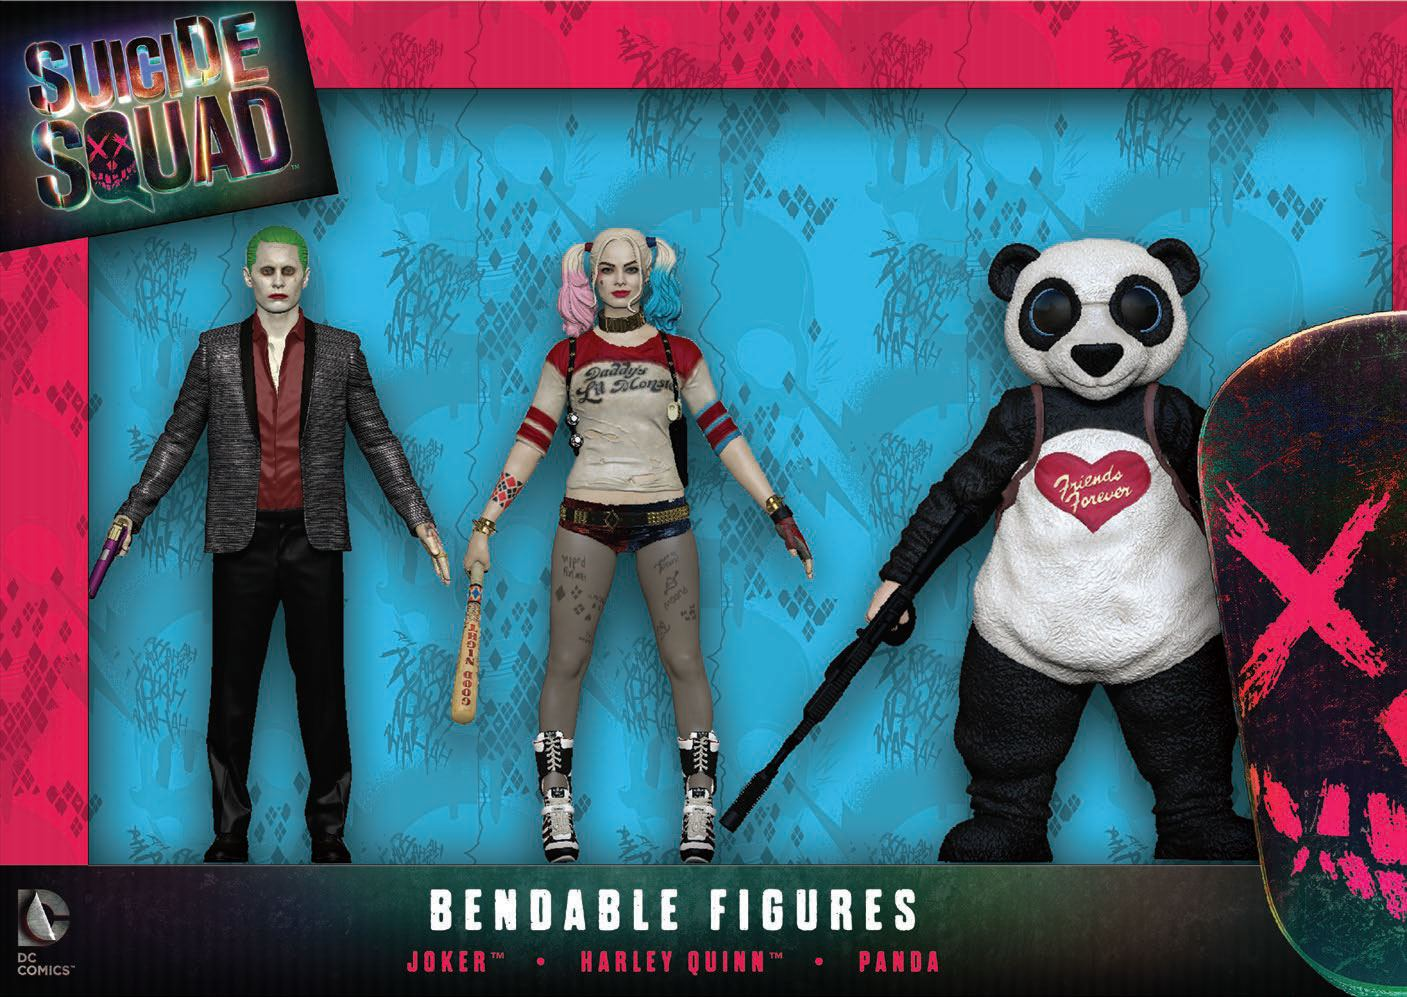 Suicide Squad Bendable Figures 3-Pack 14 cm